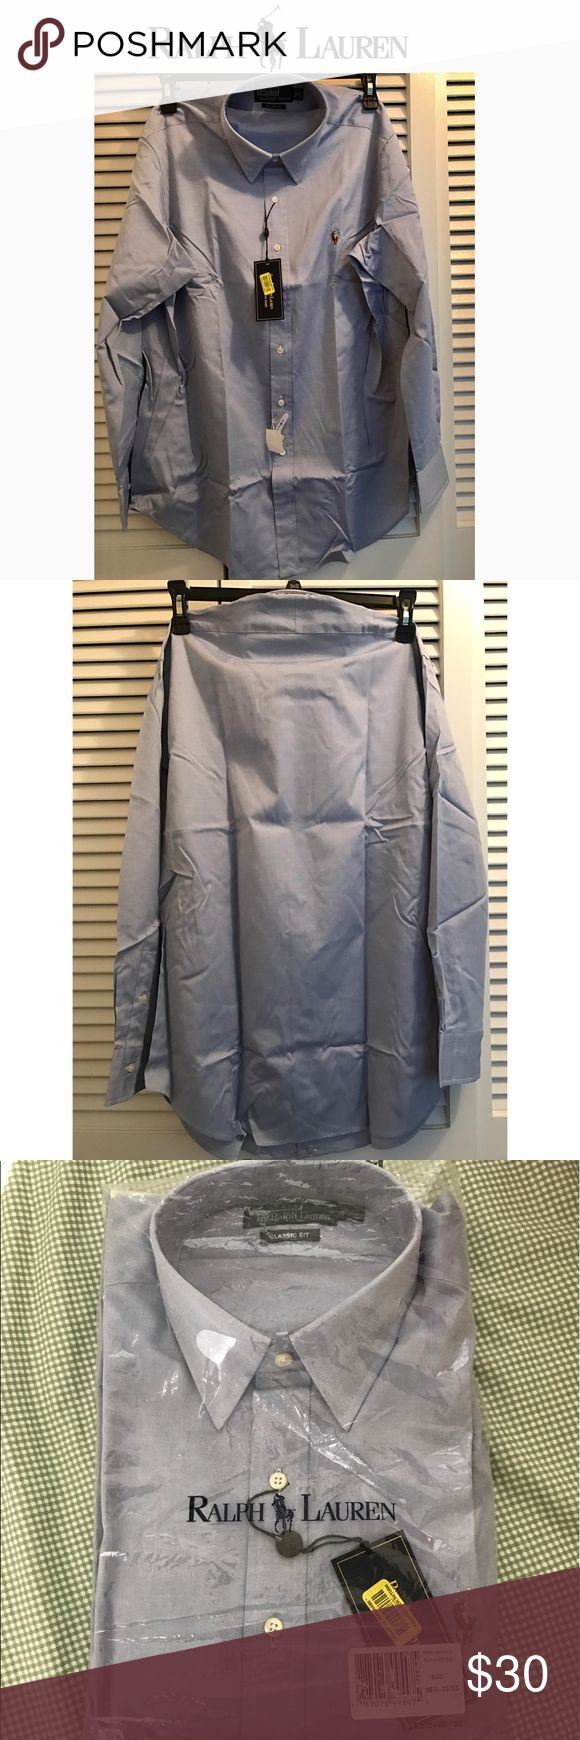 Ralph Luaren Dress shirt (16 1/2 32-33) NWT | Classic Fit 16 1/2 32-33 | Light Blue | From a Smoke/Pet Free home Polo by Ralph Lauren Shirts Dress Shirts